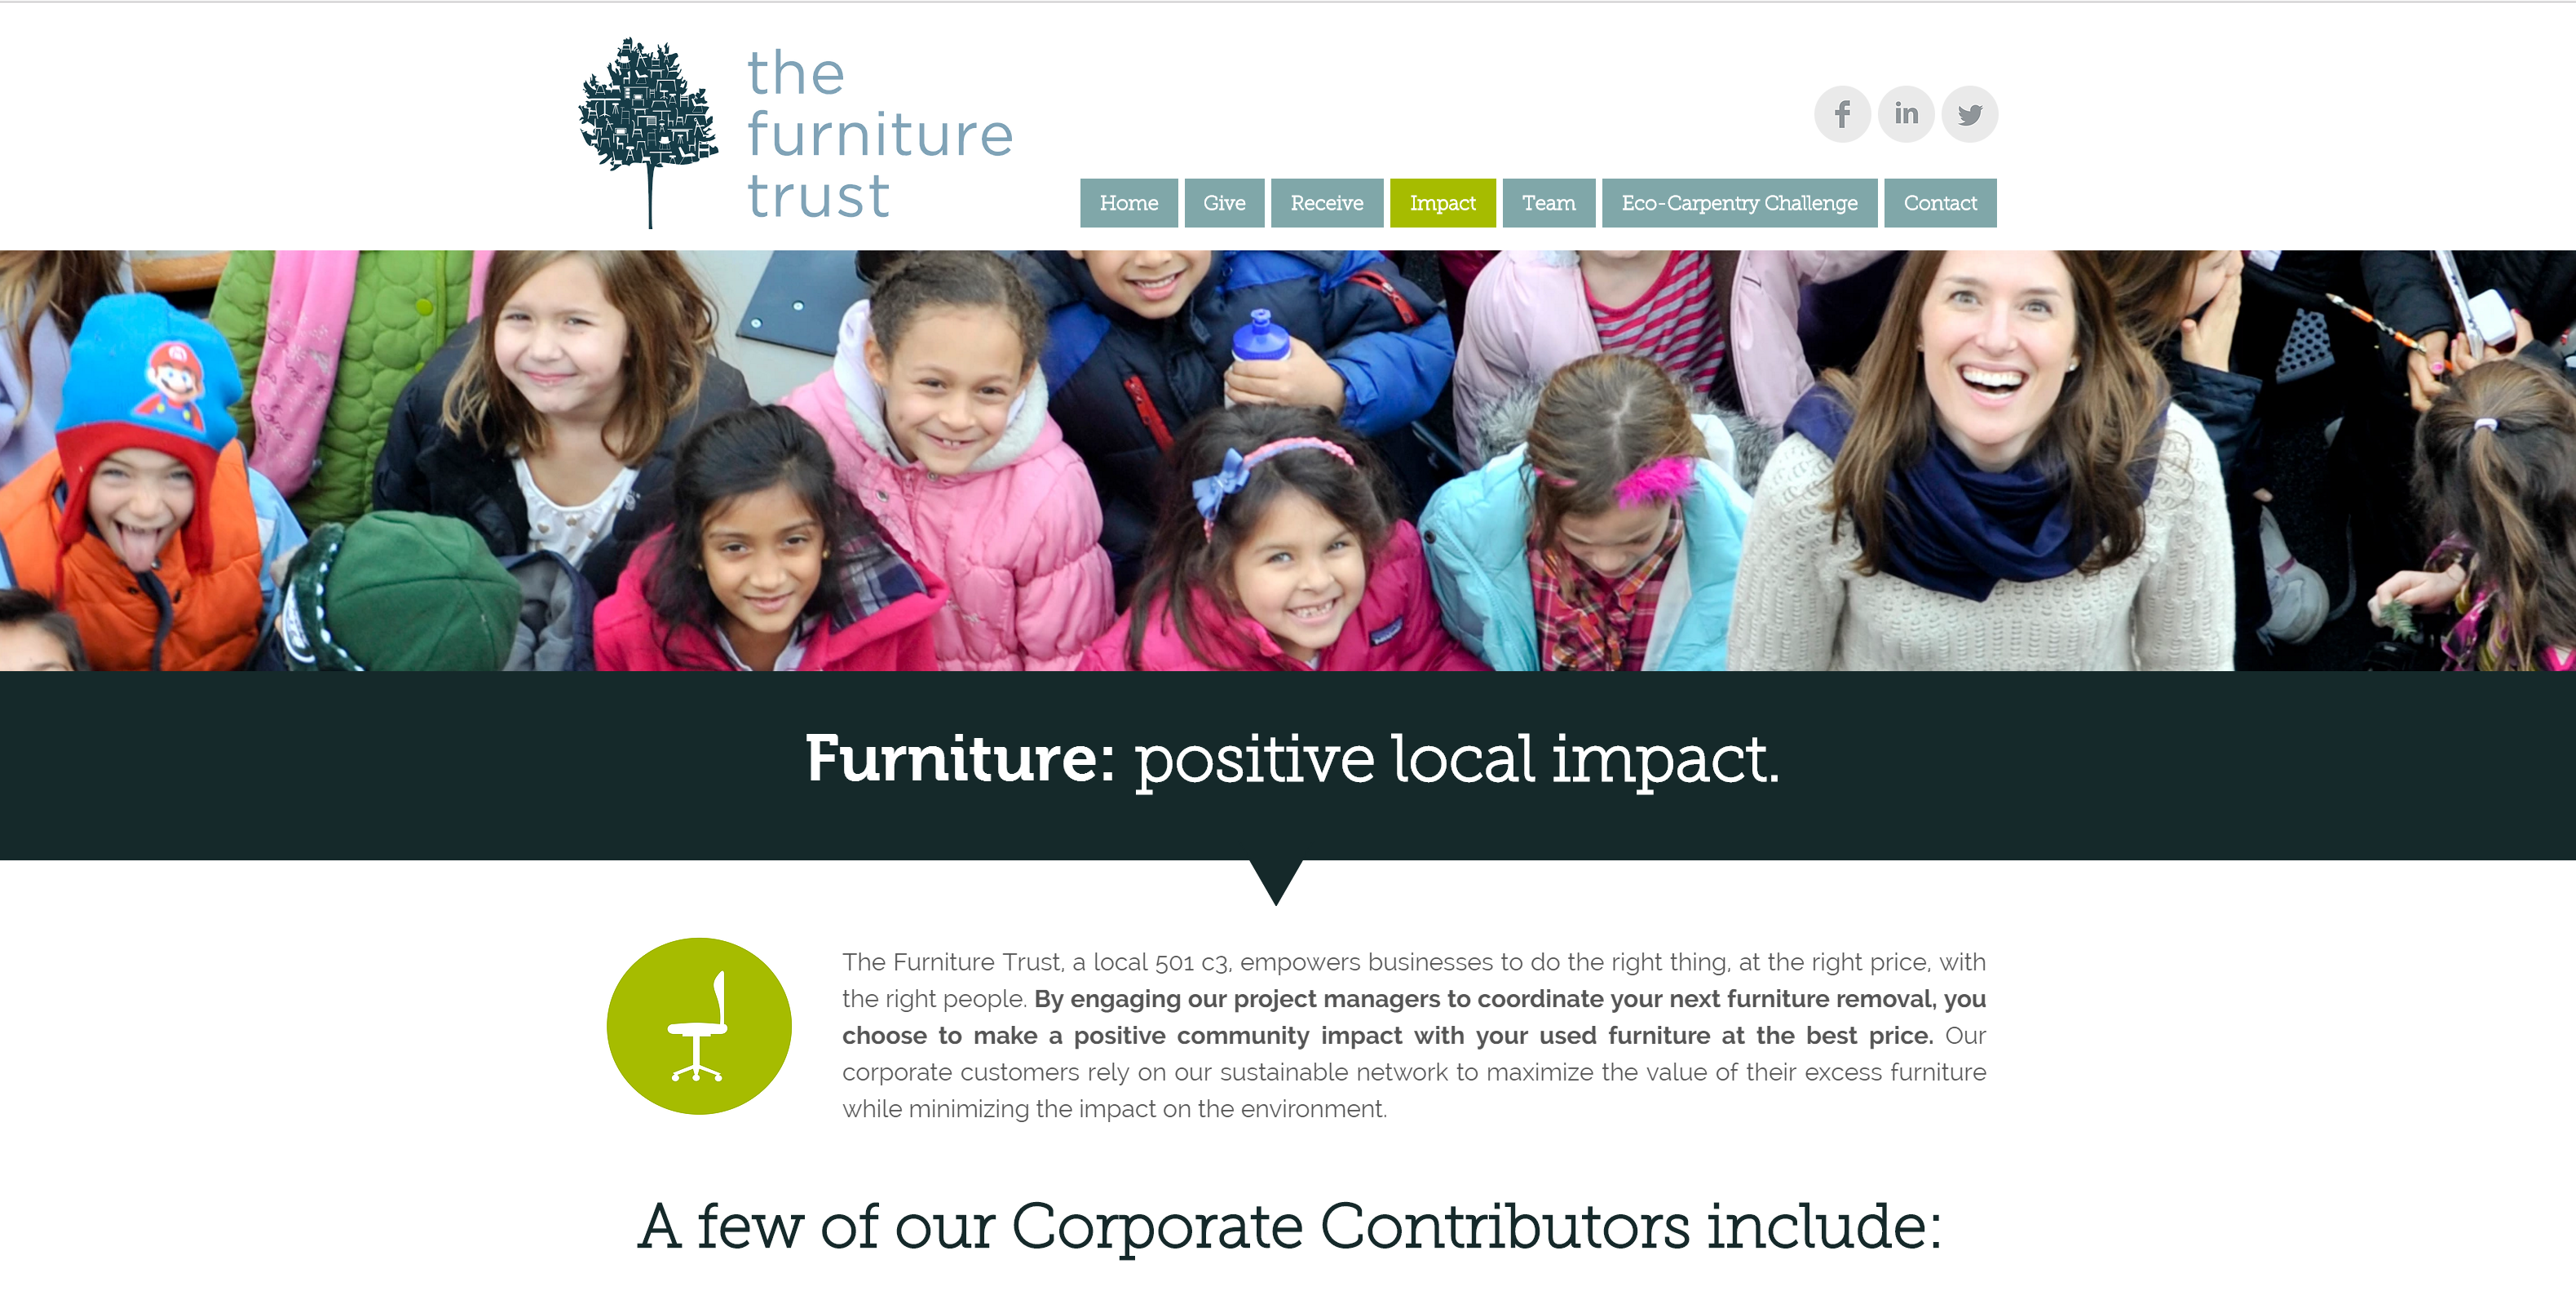 Sarah-Cas-Graphic-Design-Website-Design-The Furniture Trust-03